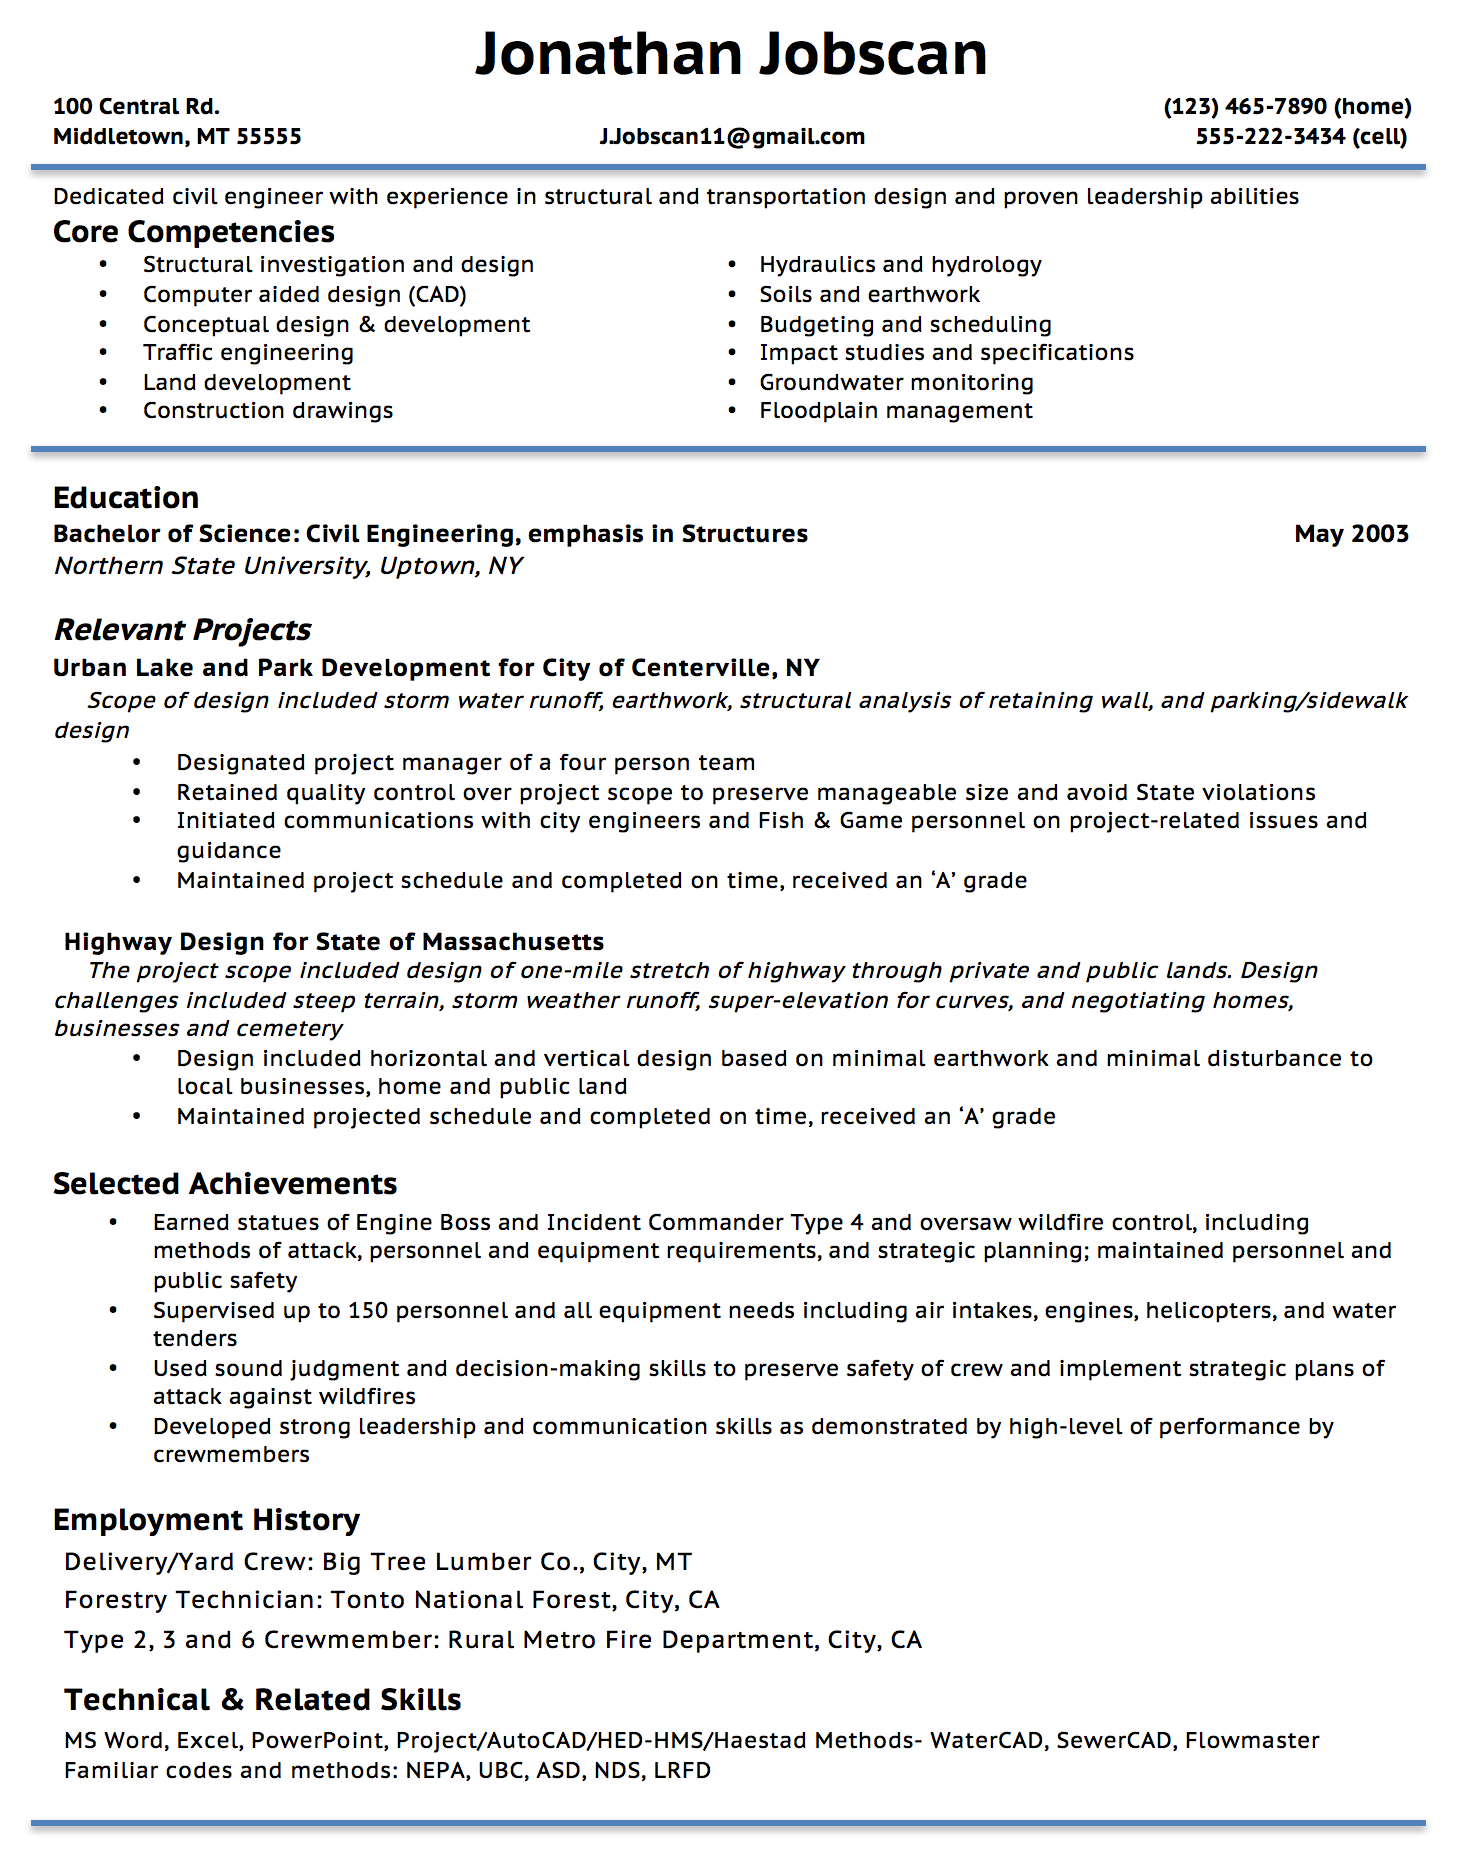 Opposenewapstandardsus  Marvellous Resume Writing Guide  Jobscan With Engaging Example Of A Functional Resume Format With Amazing How To Properly Make A Resume Also Lists Of Skills For Resume In Addition Construction Resume Samples And Service Coordinator Resume As Well As Actor Resume Format Additionally How Do U Spell Resume From Jobscanco With Opposenewapstandardsus  Engaging Resume Writing Guide  Jobscan With Amazing Example Of A Functional Resume Format And Marvellous How To Properly Make A Resume Also Lists Of Skills For Resume In Addition Construction Resume Samples From Jobscanco